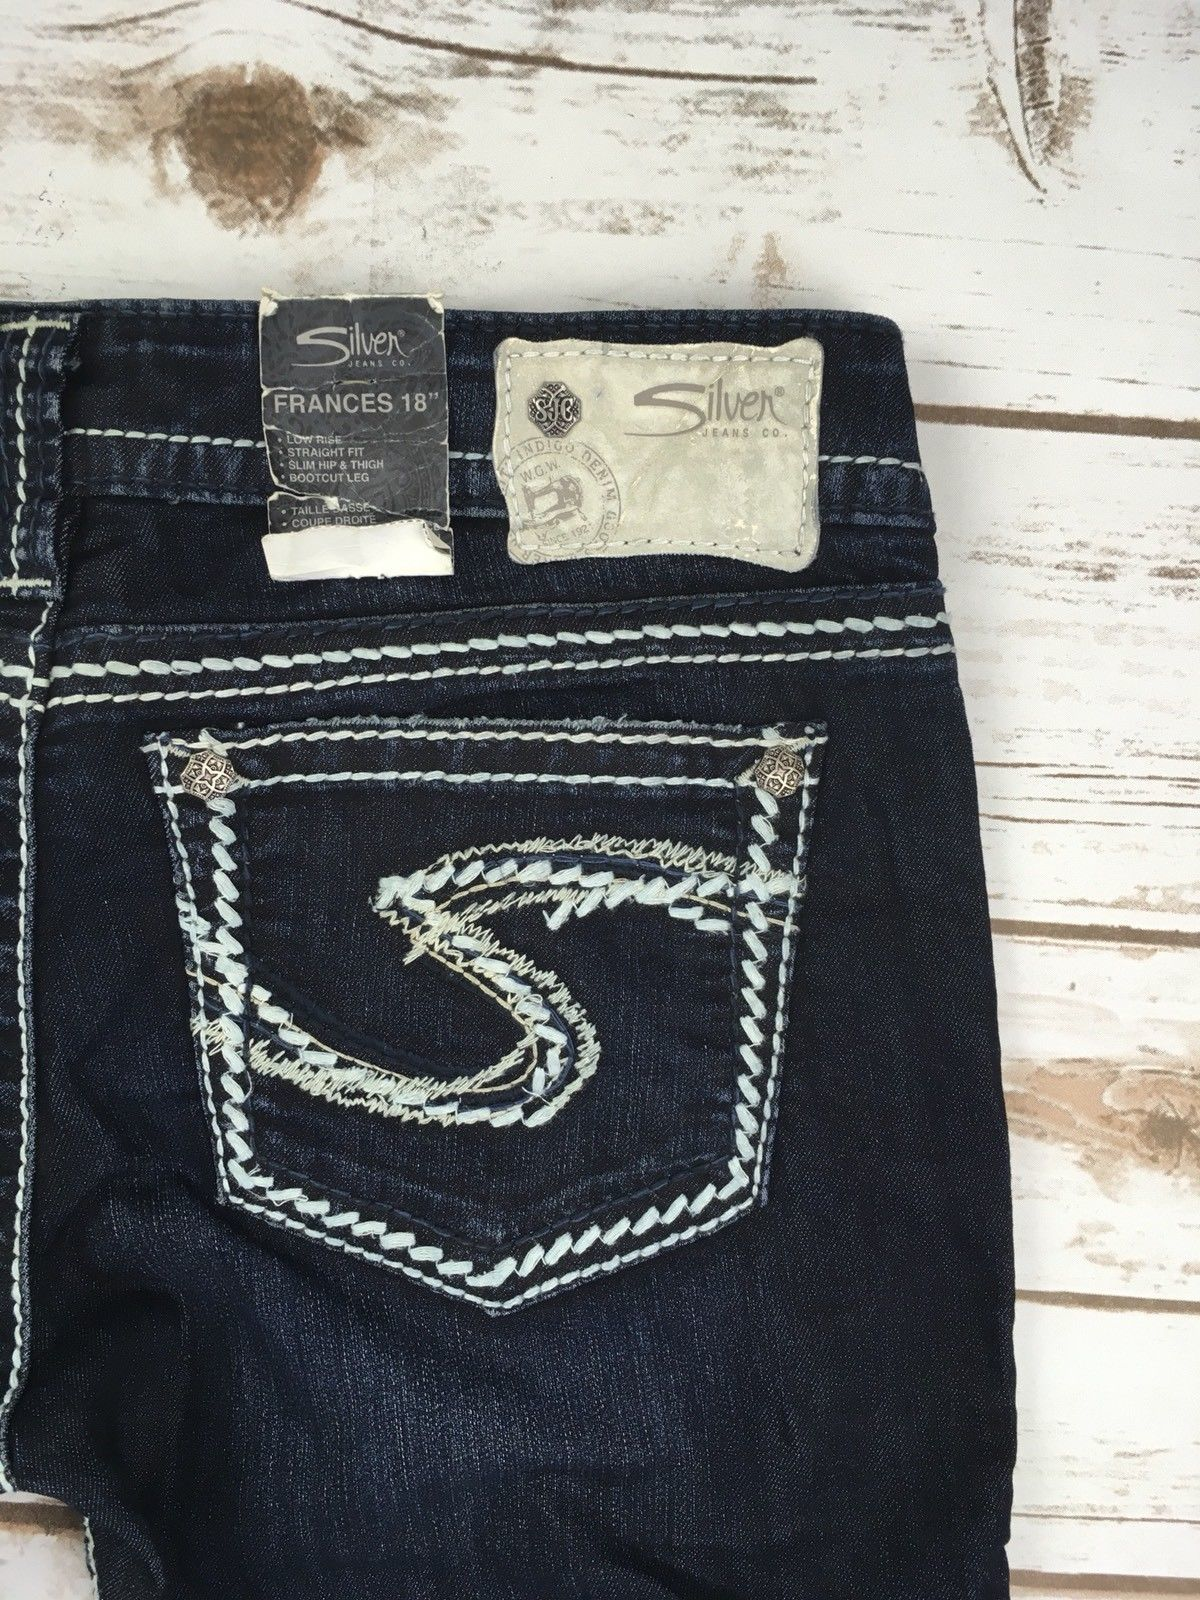 SILVER JEANS SHORTS Buckle Low Rise Frances Dark Jean Denim Shorts 28